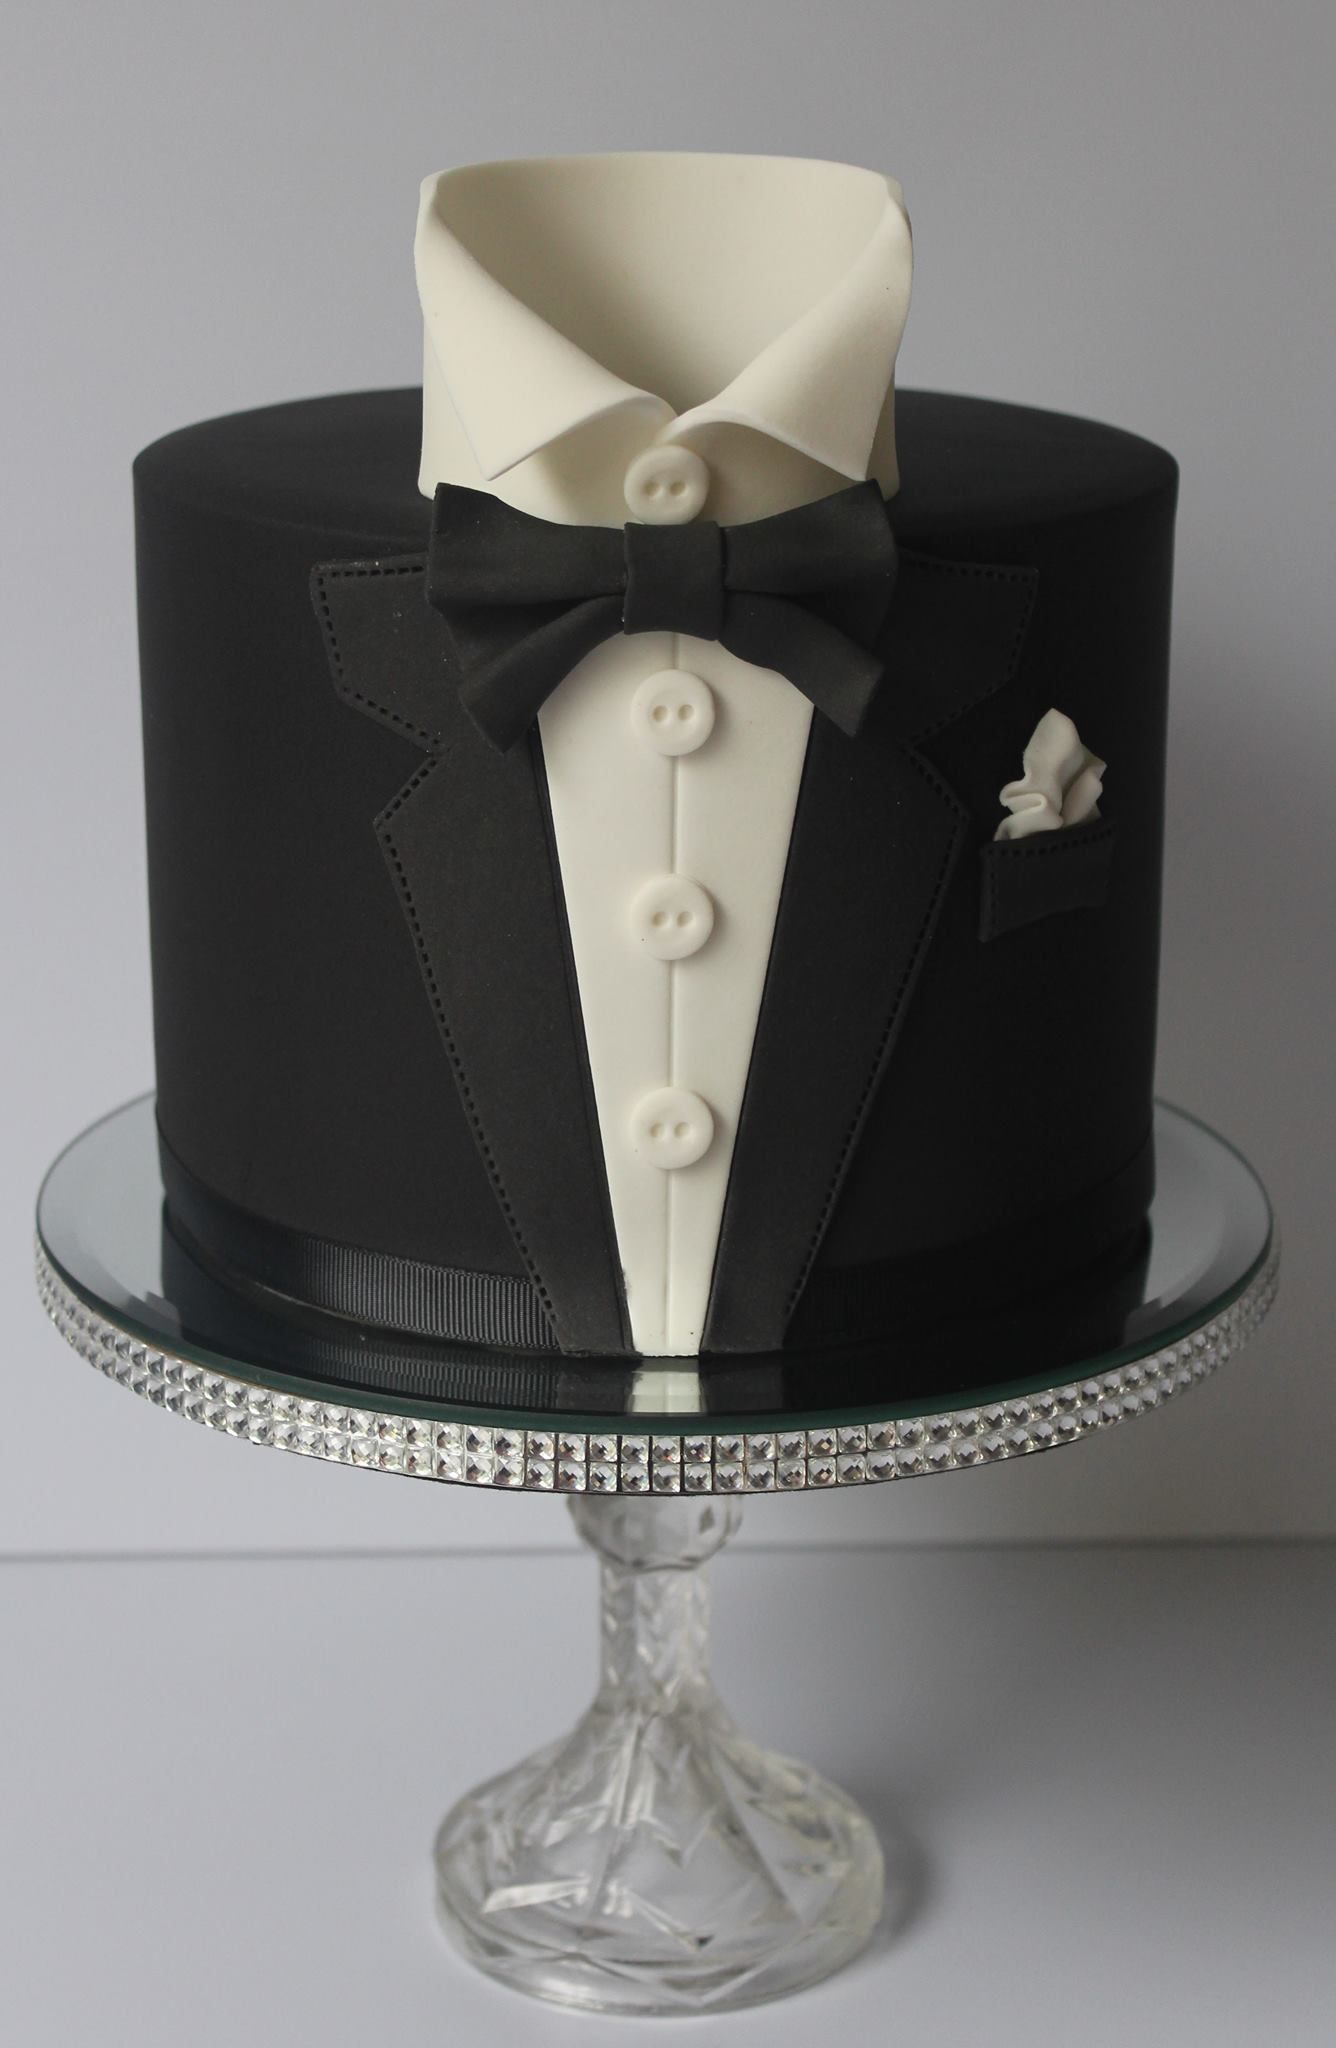 Tuxedo Cake Is Perfect As The Groom S Cake Cakes